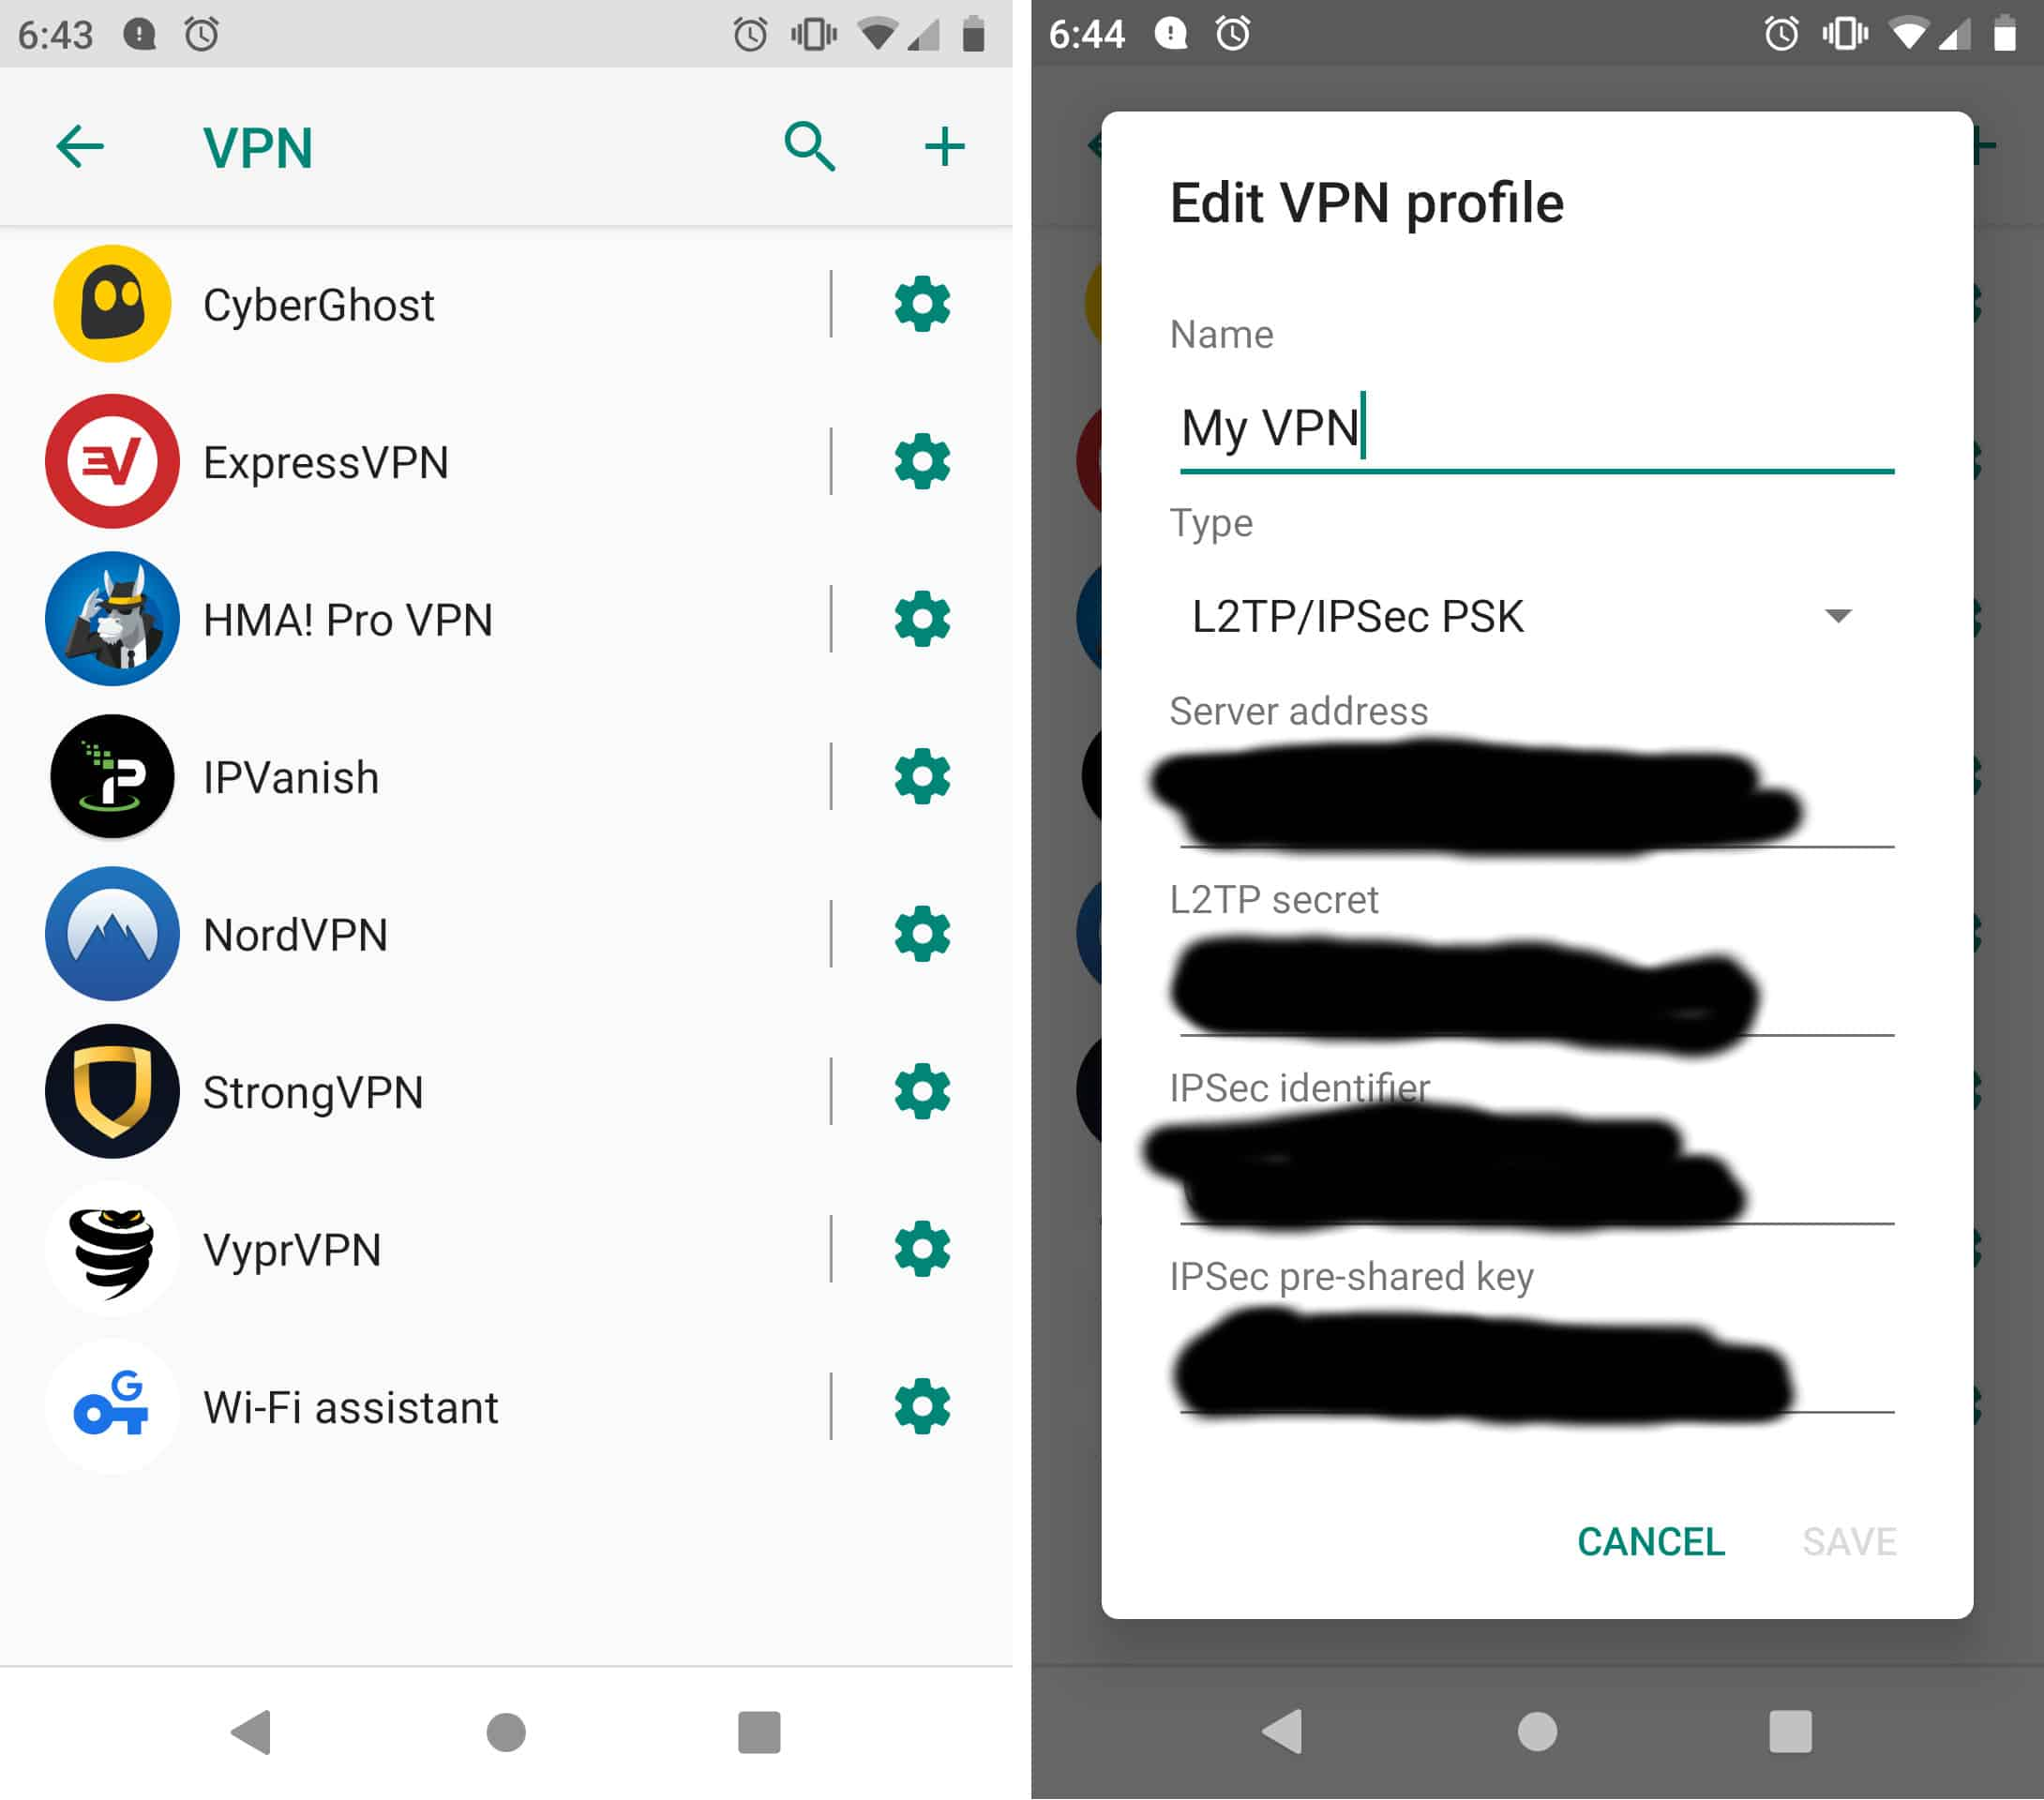 5 Best VPNs for Android in 2019 : Do any Free VPNs Make the